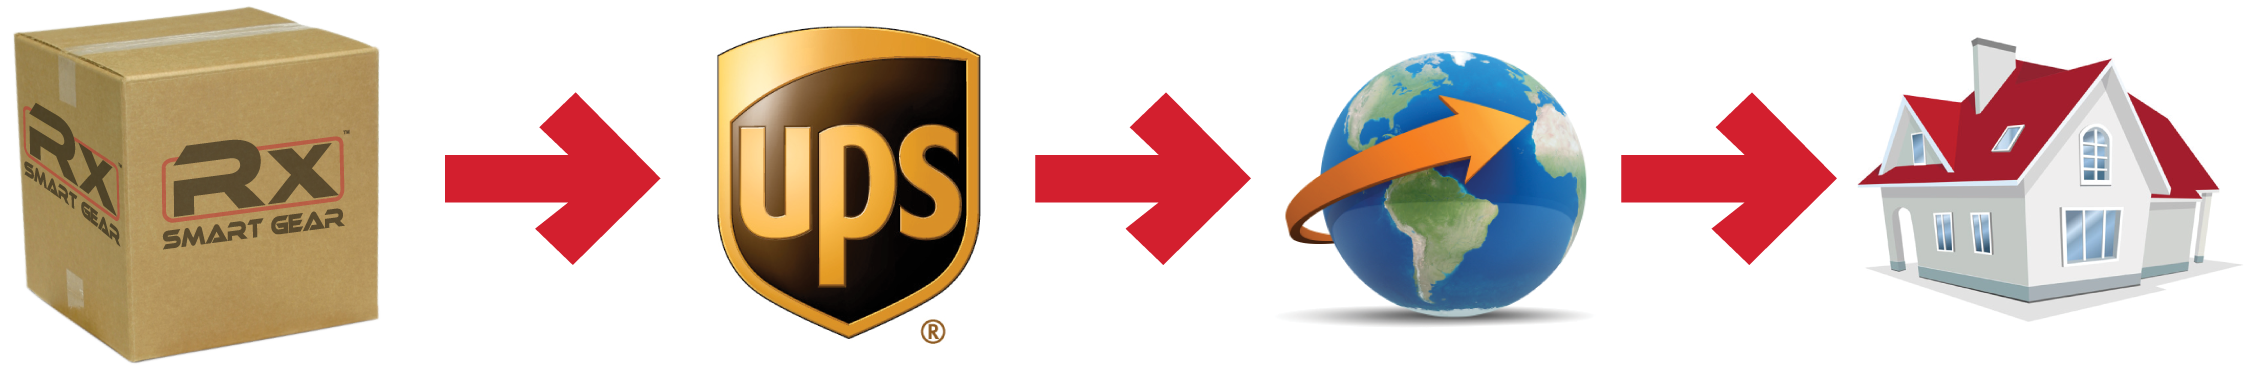 rx-ups-usps-world-home.png